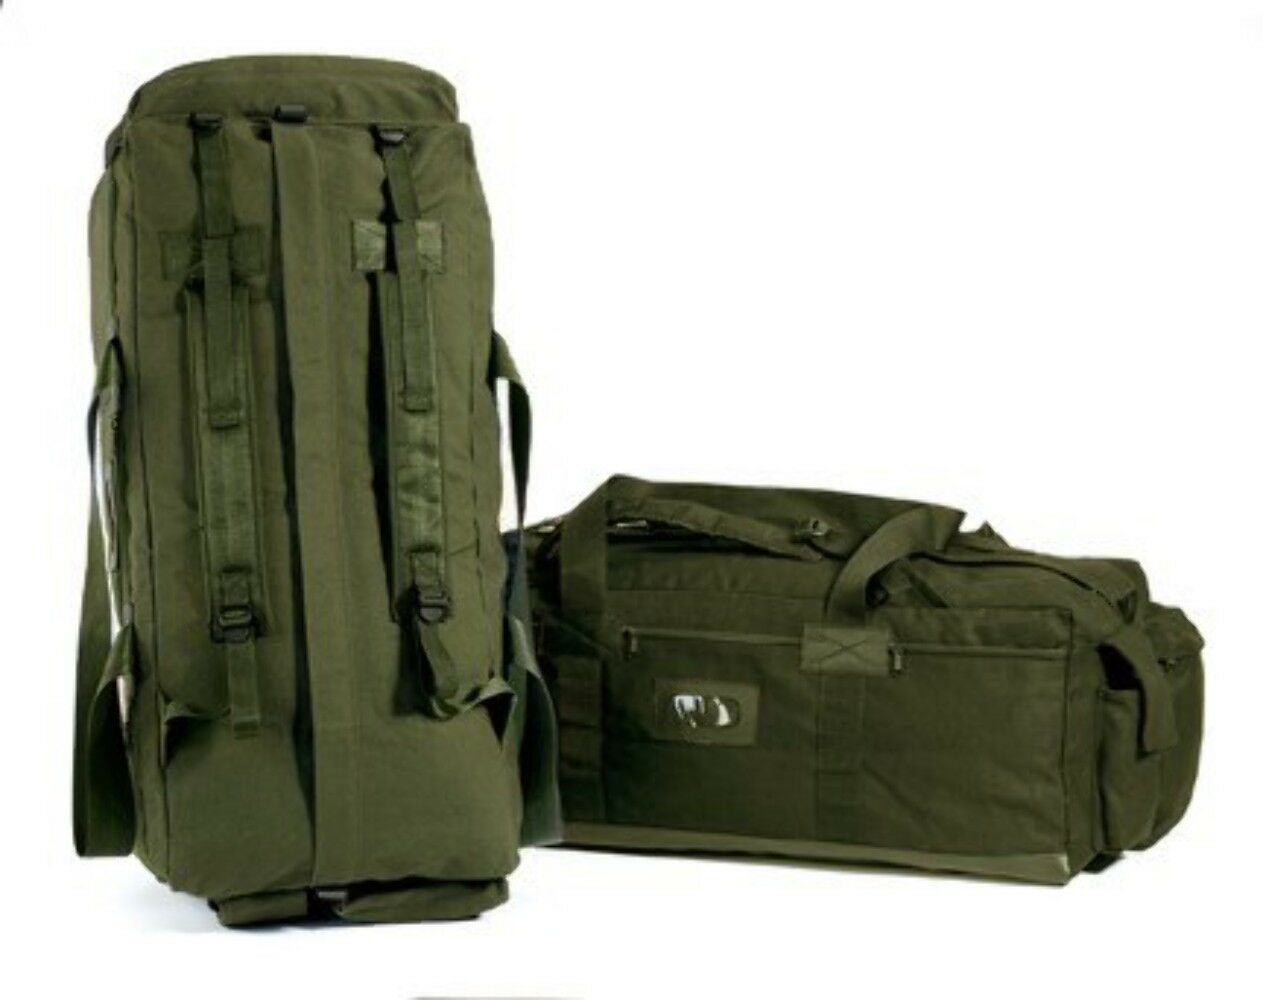 Tactical Canvas Bag - Heavy Duty - Olive Drab - Army & Military